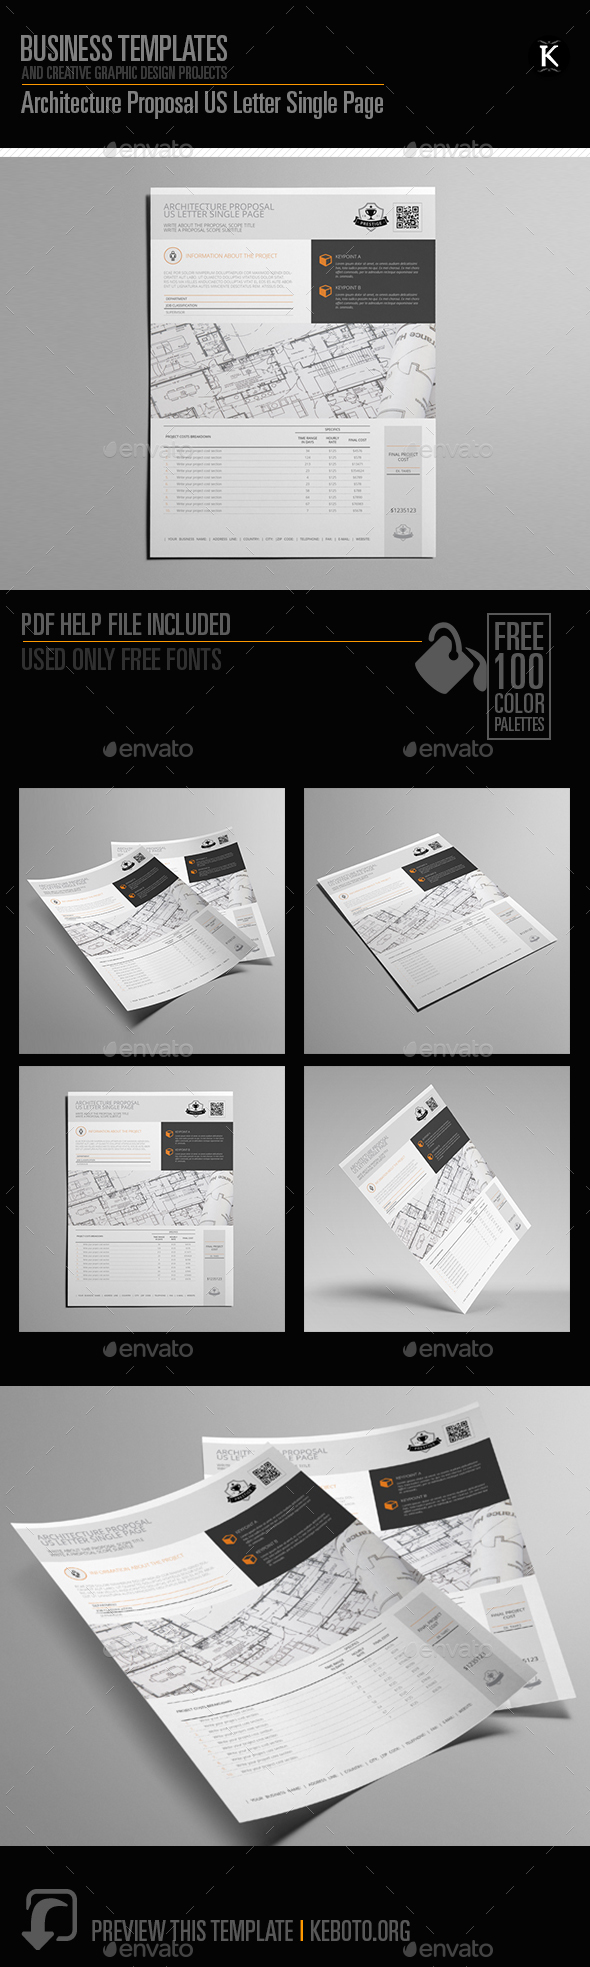 Architecture Proposal US Letter Single Page - Miscellaneous Print Templates